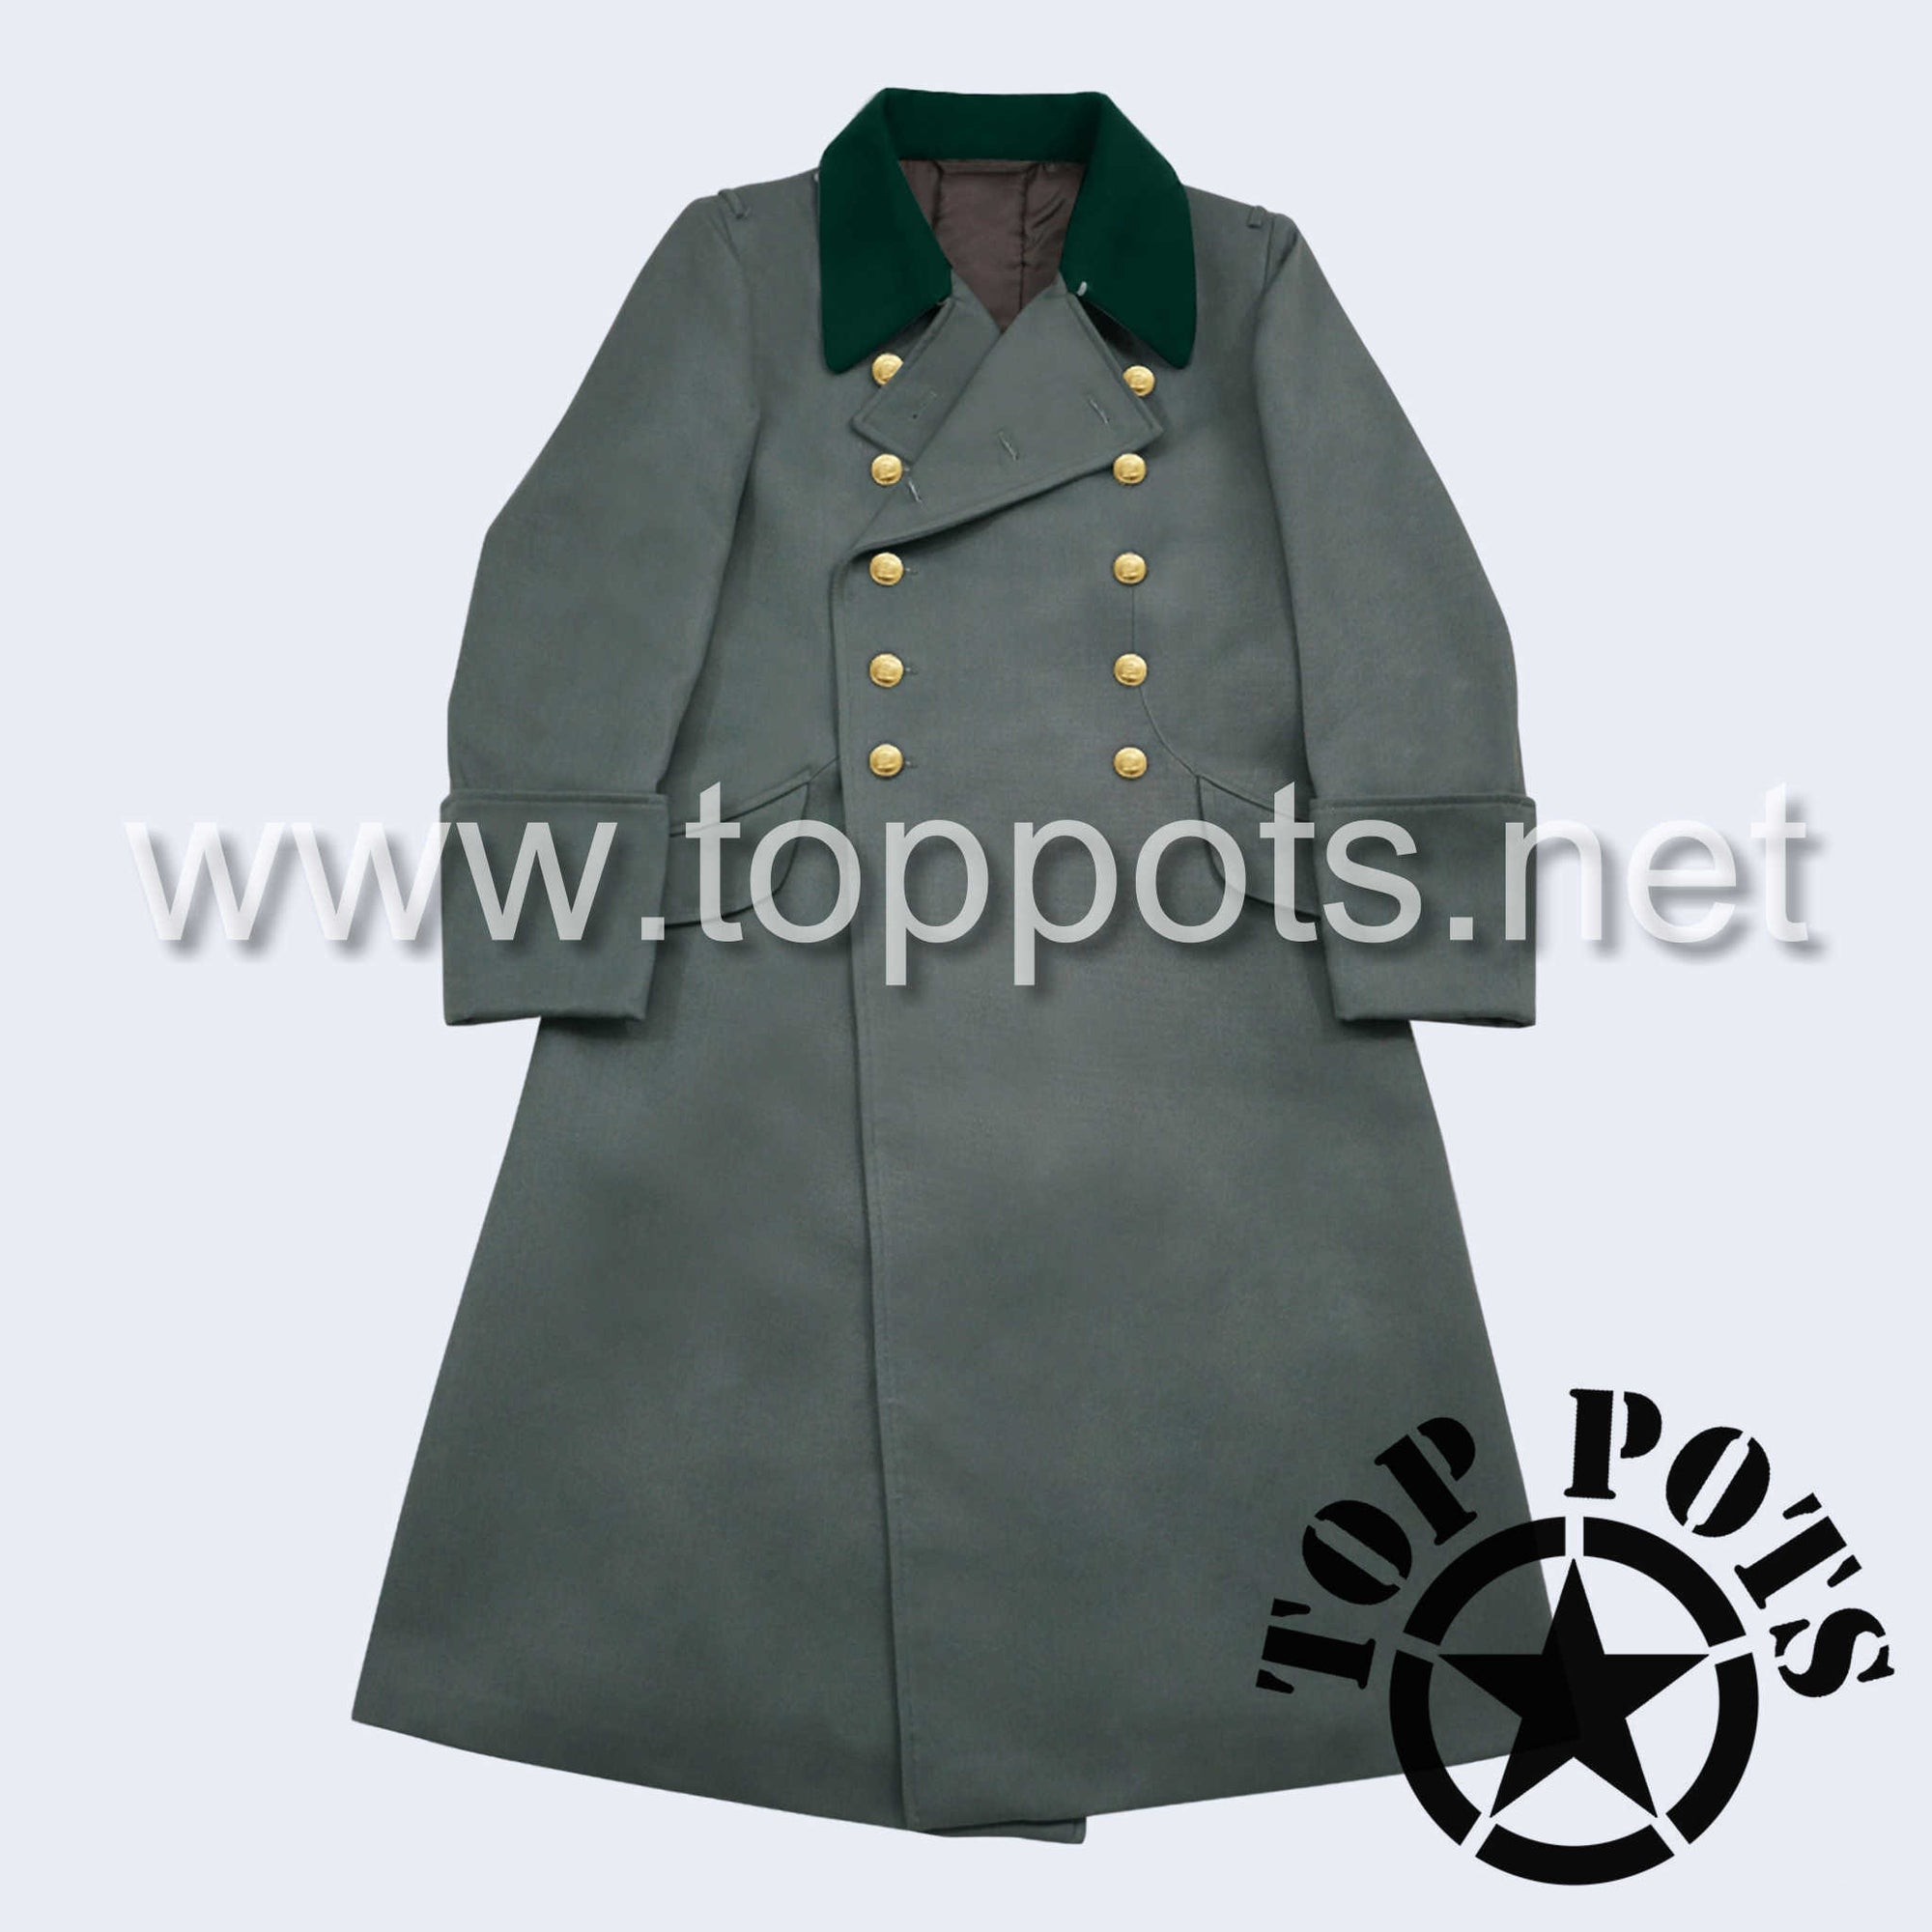 WWII German Navy M1936 Kriegsmarine Uniform Overcoat Greatcoat Winter Jacket Field Grey Gabardine - Coastal Officer